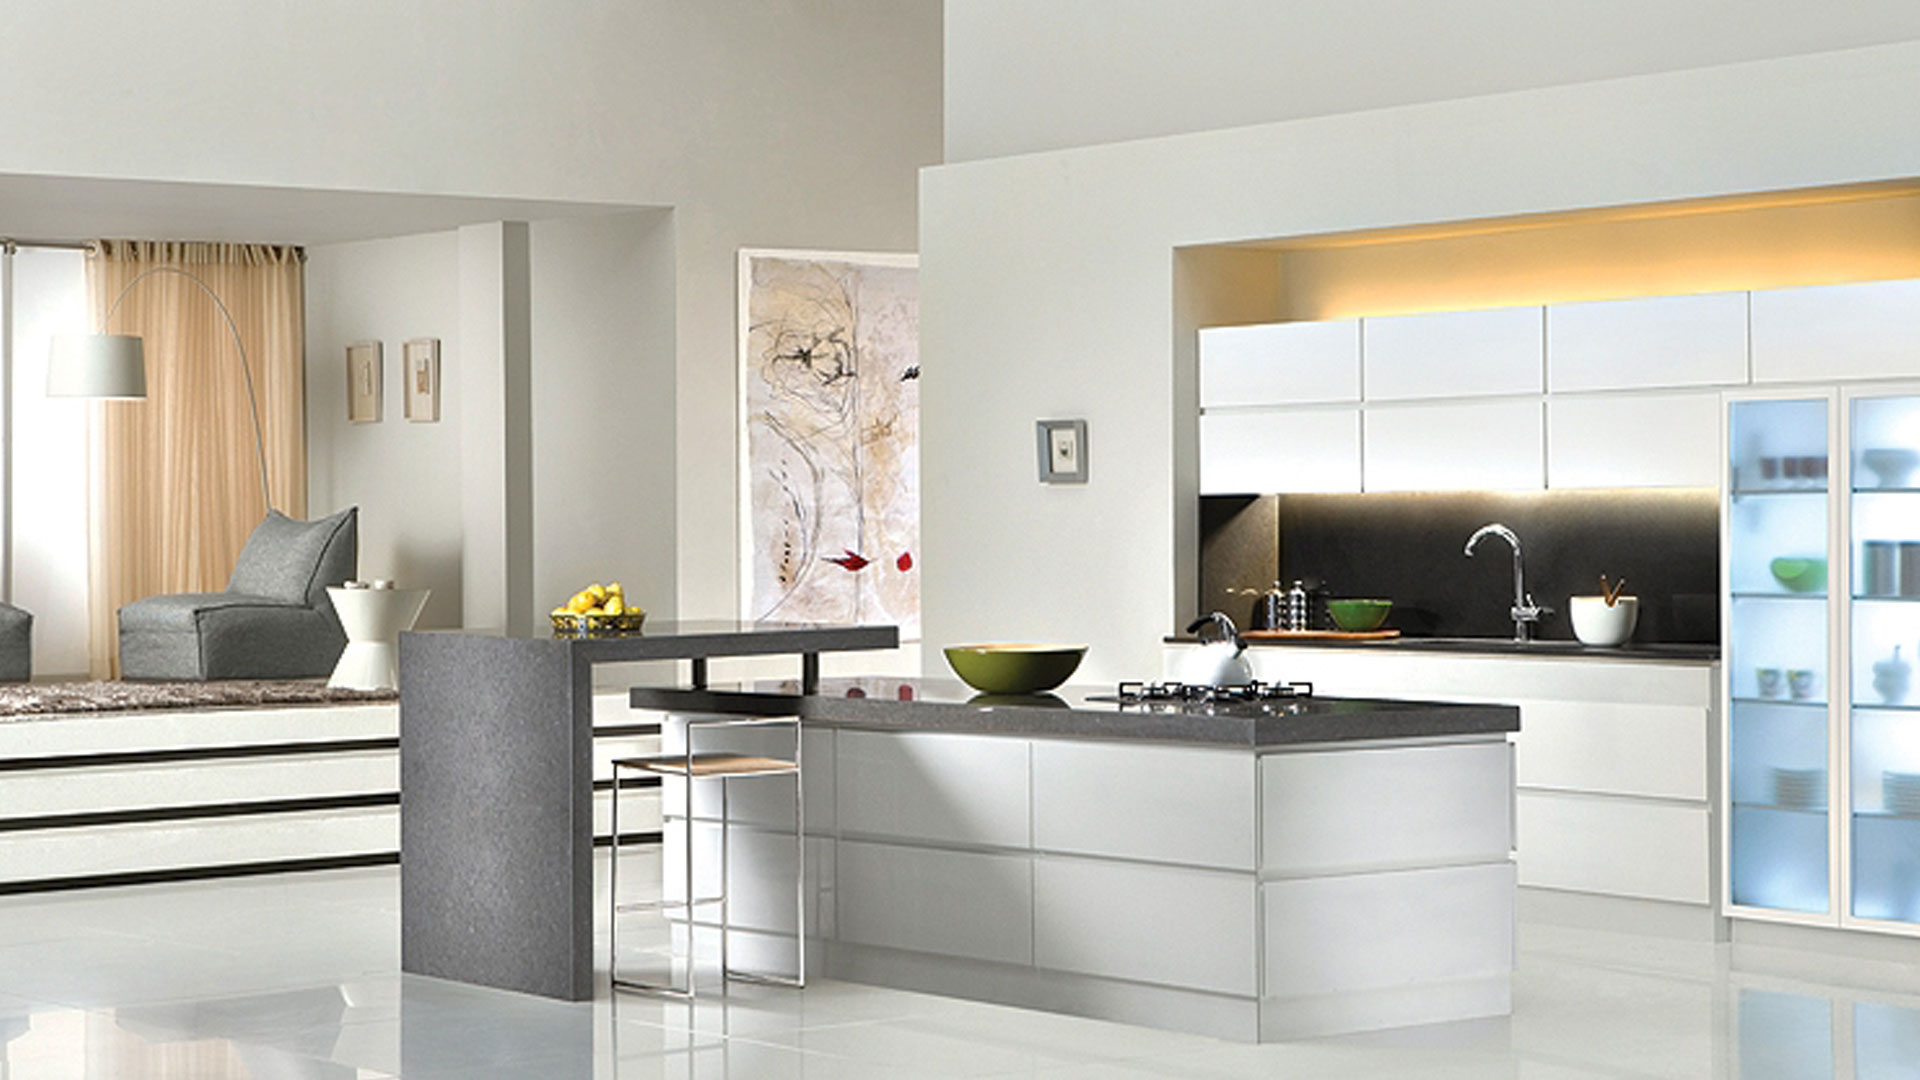 Great Kitchen Interior Design Trends 2015 1920 x 1080 · 205 kB · jpeg